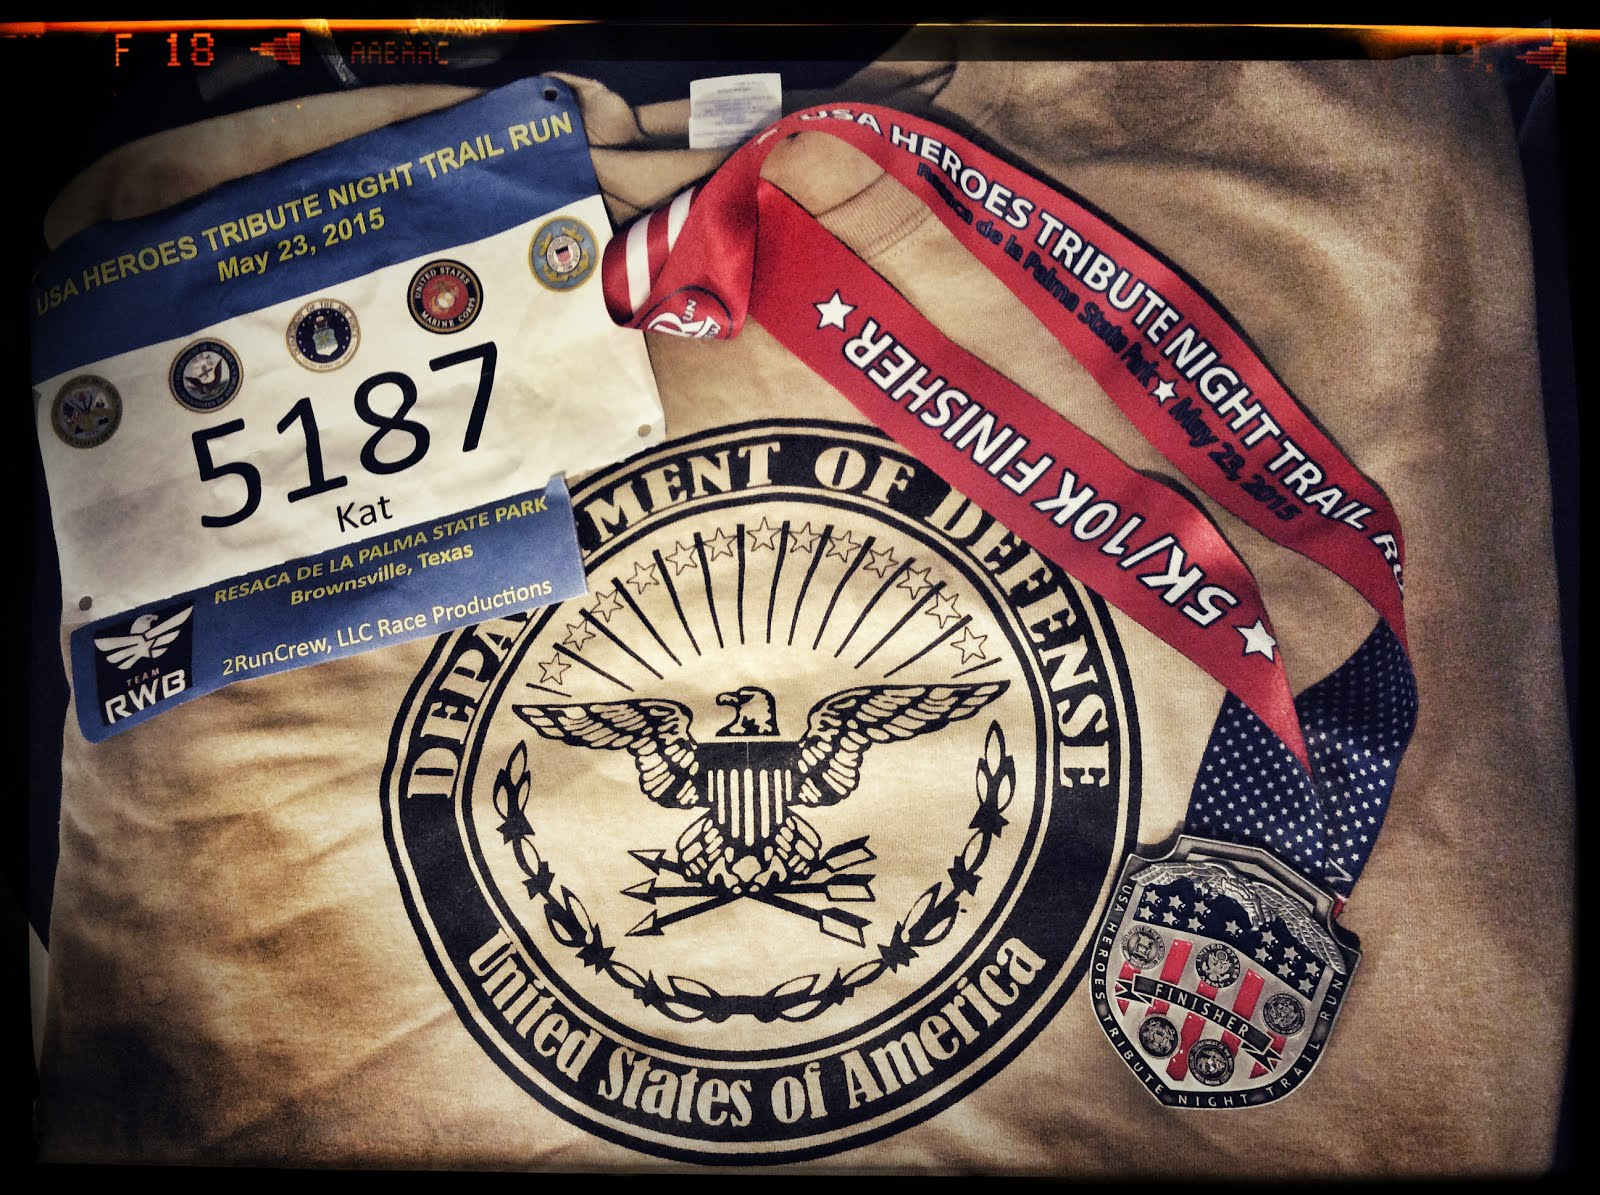 USA Heroes 5K Trail Race - DONE!